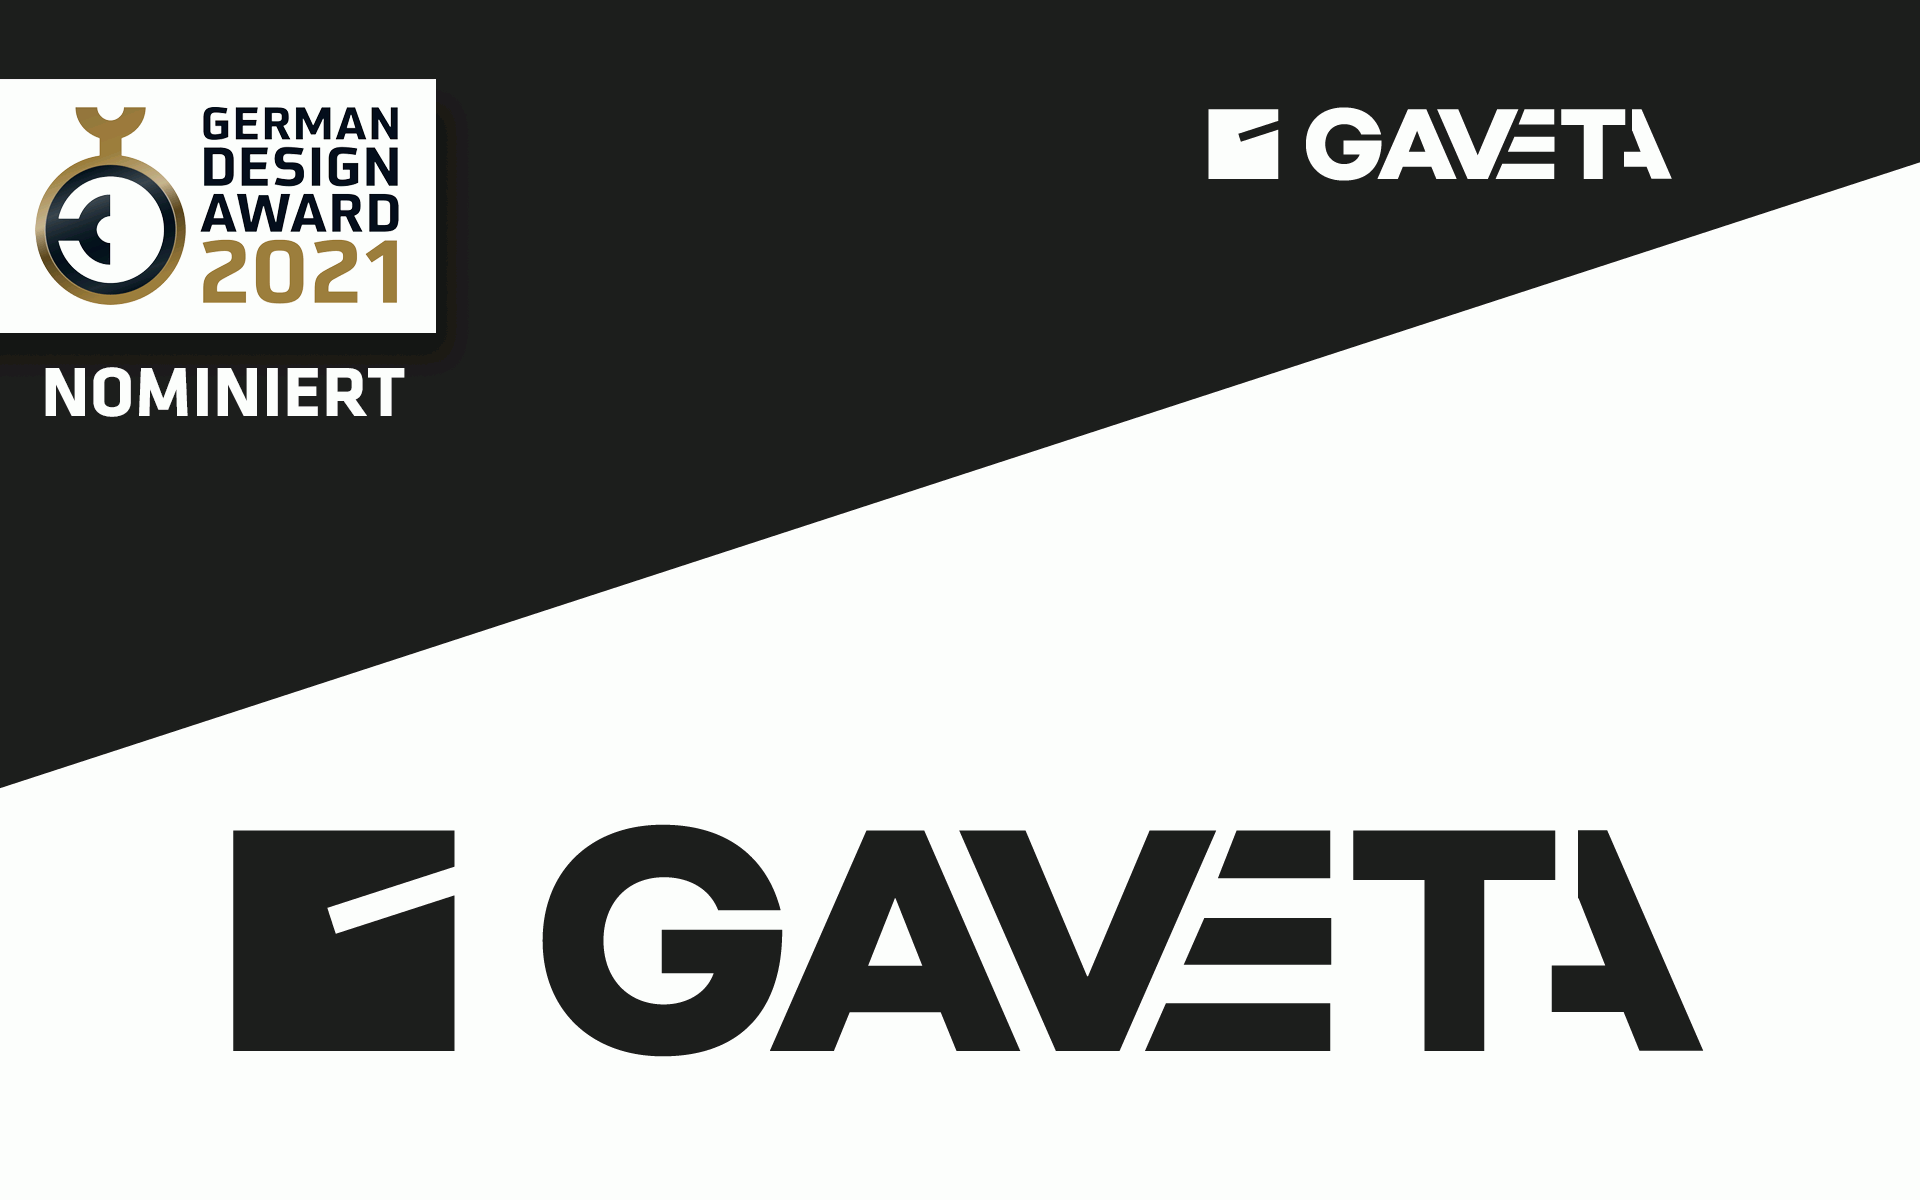 German Design Award Nominee, GAVETA-Logotype, Corporate Design